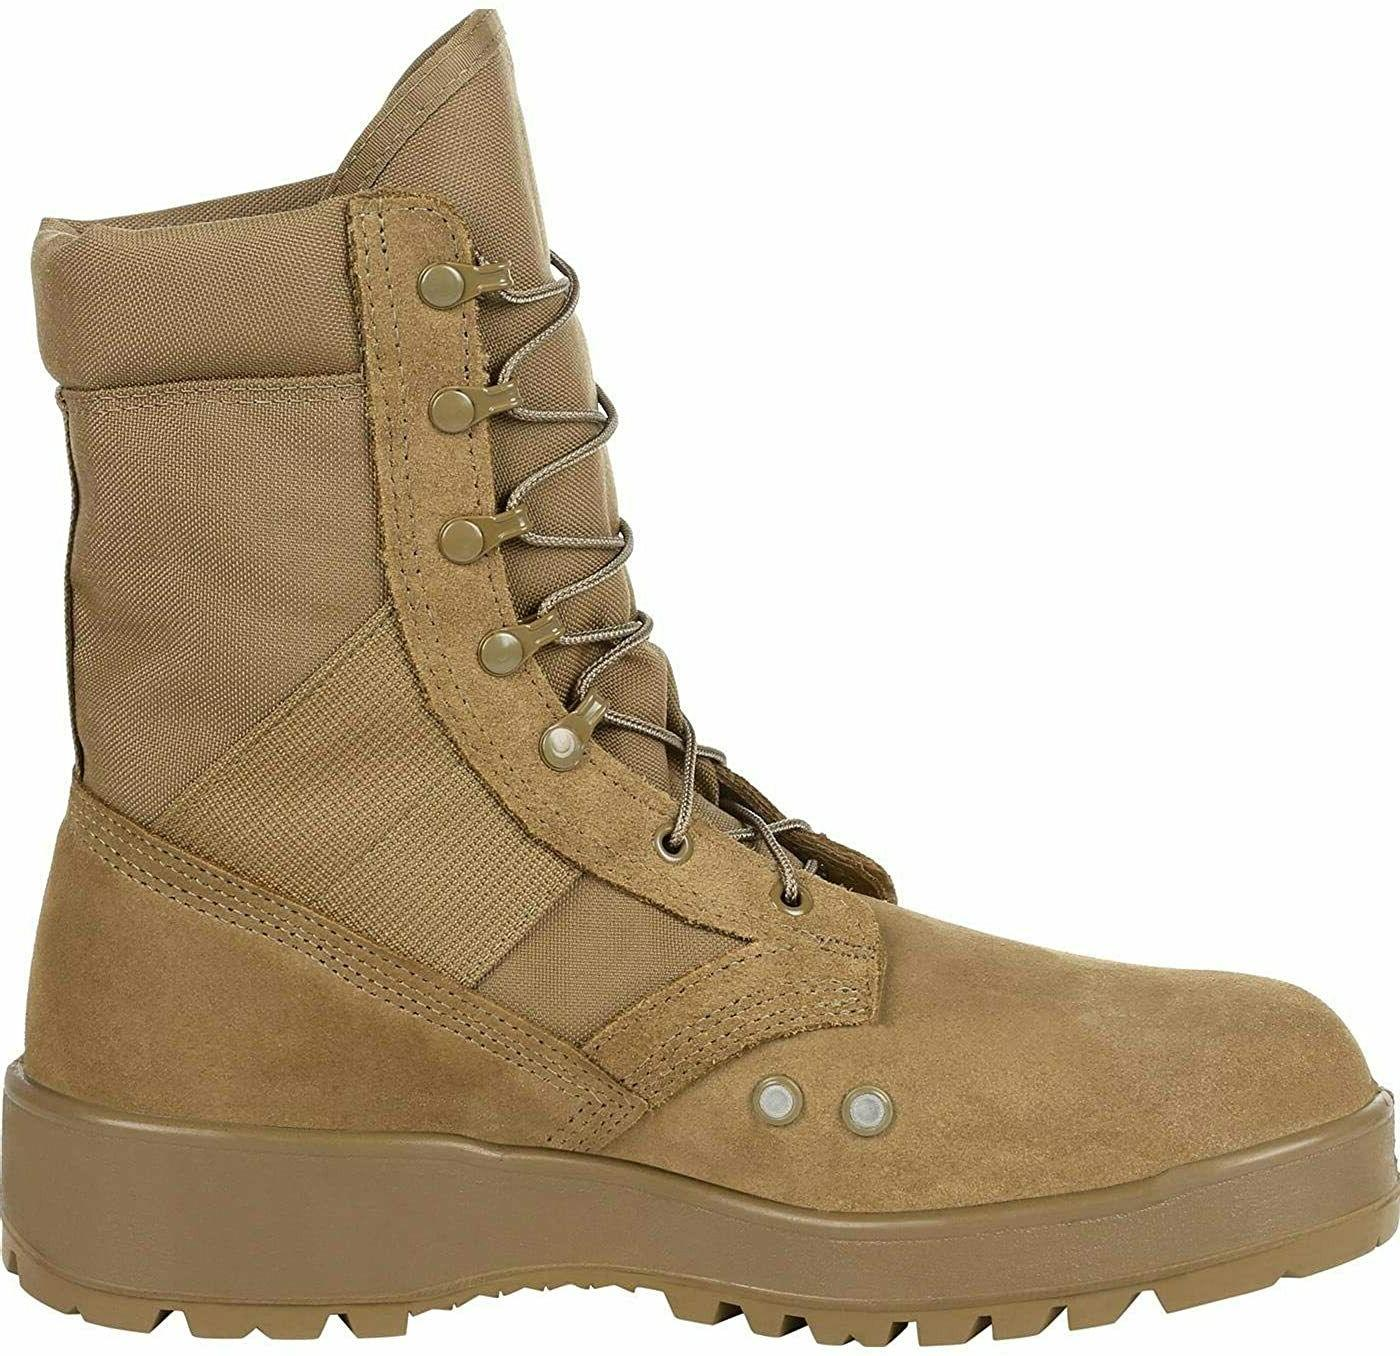 Rocky Army Desert TAN Weather Combat Boots Size New in Box!